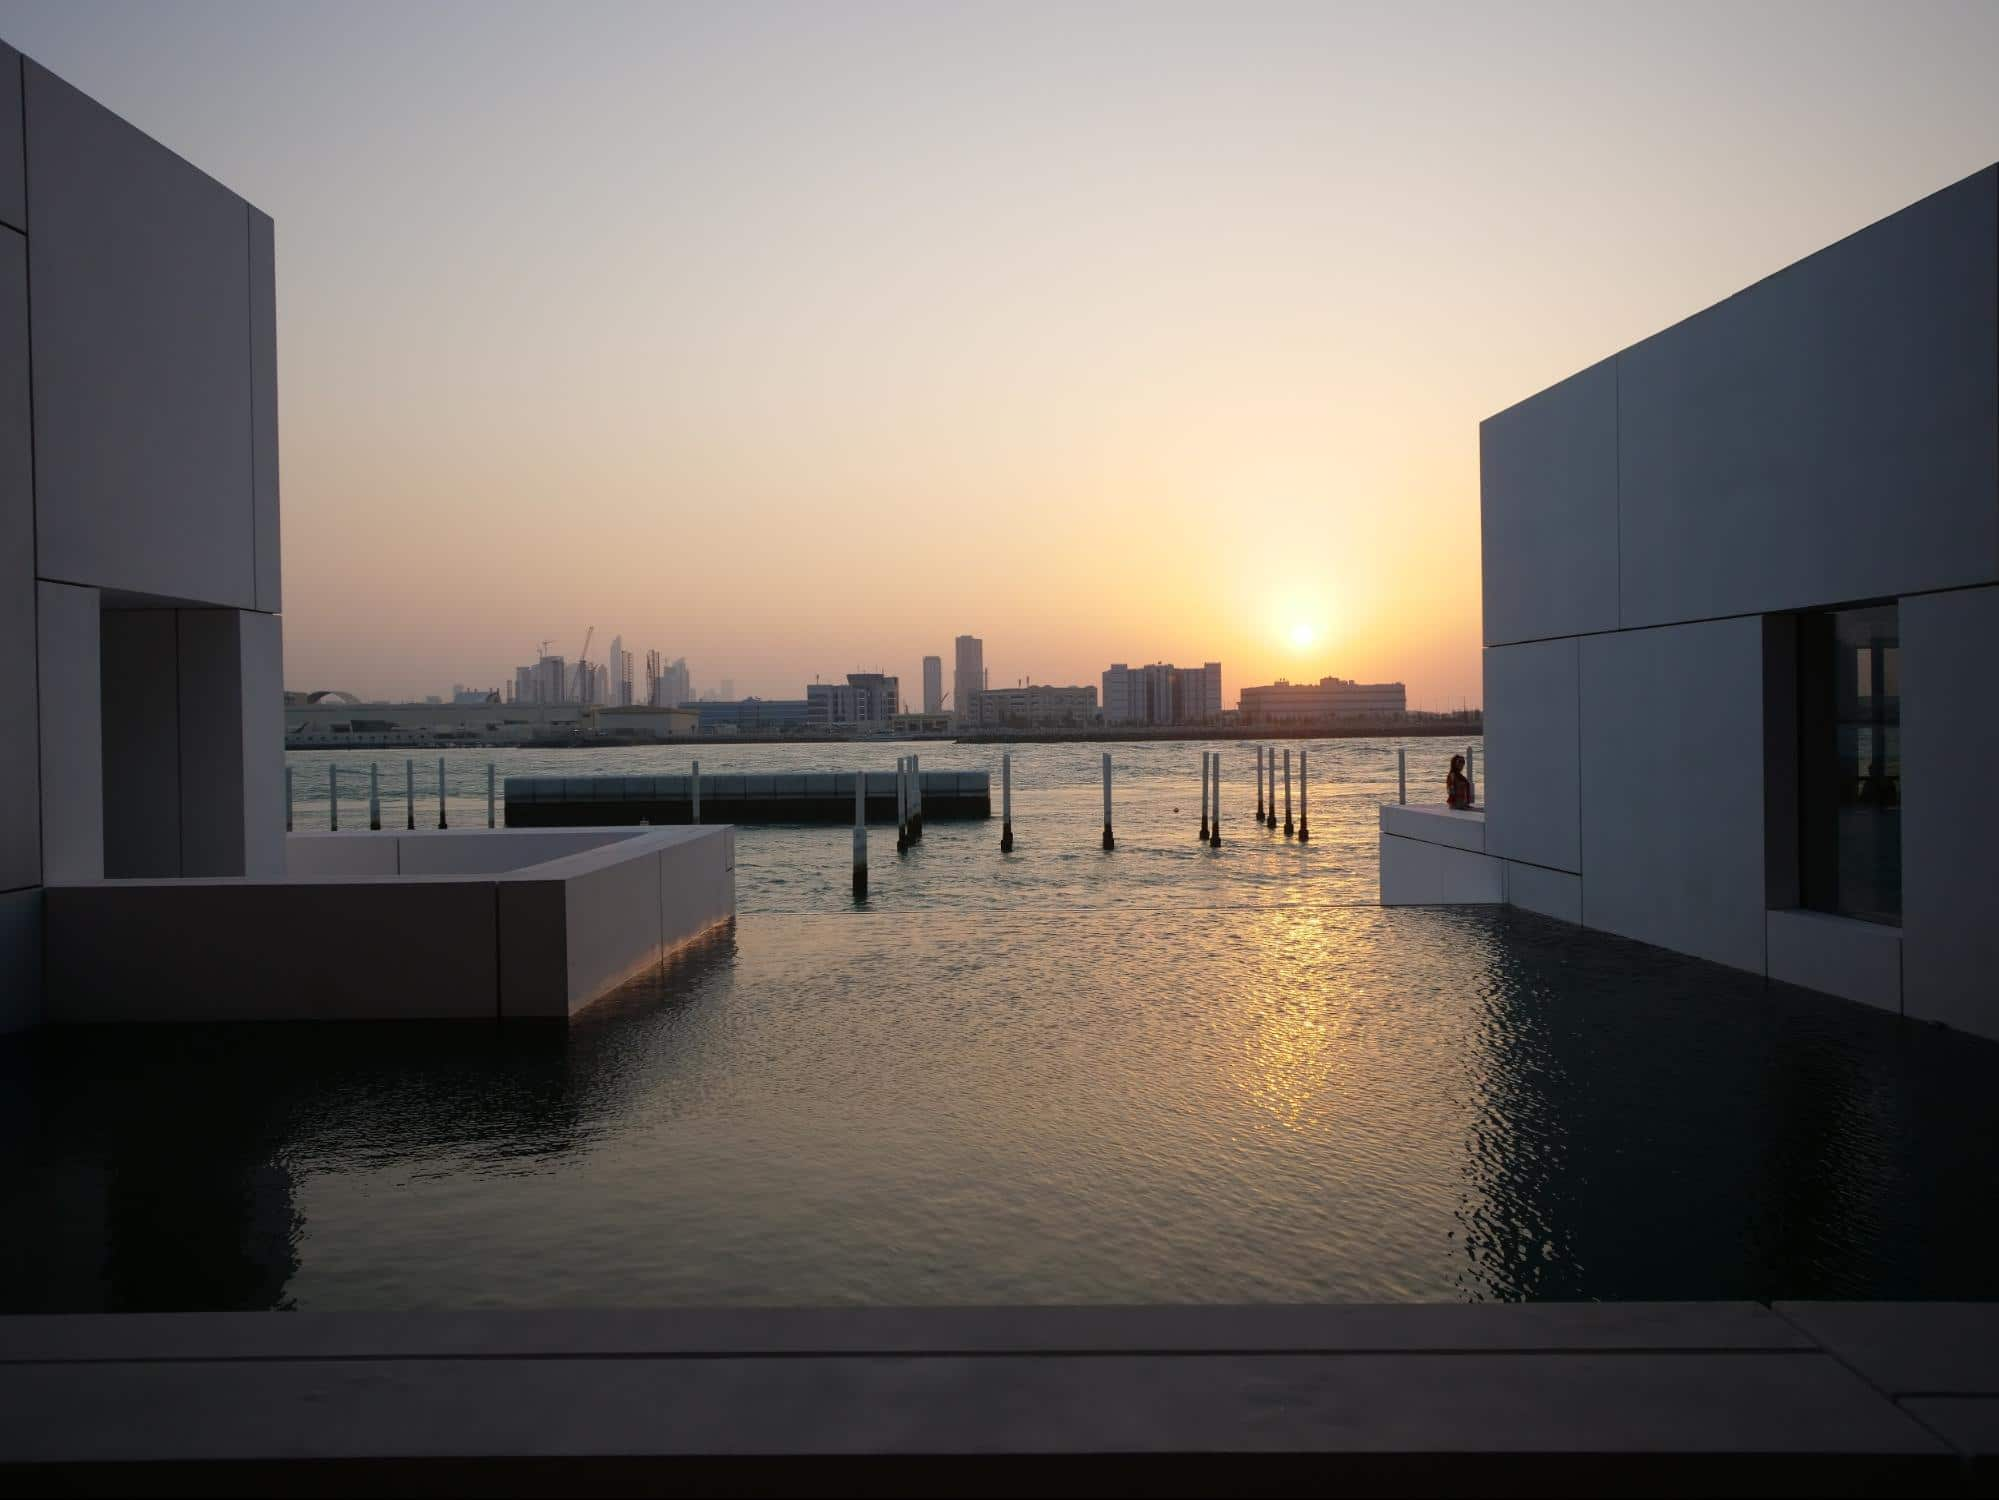 The Louvre Museum Abu Dhabi view